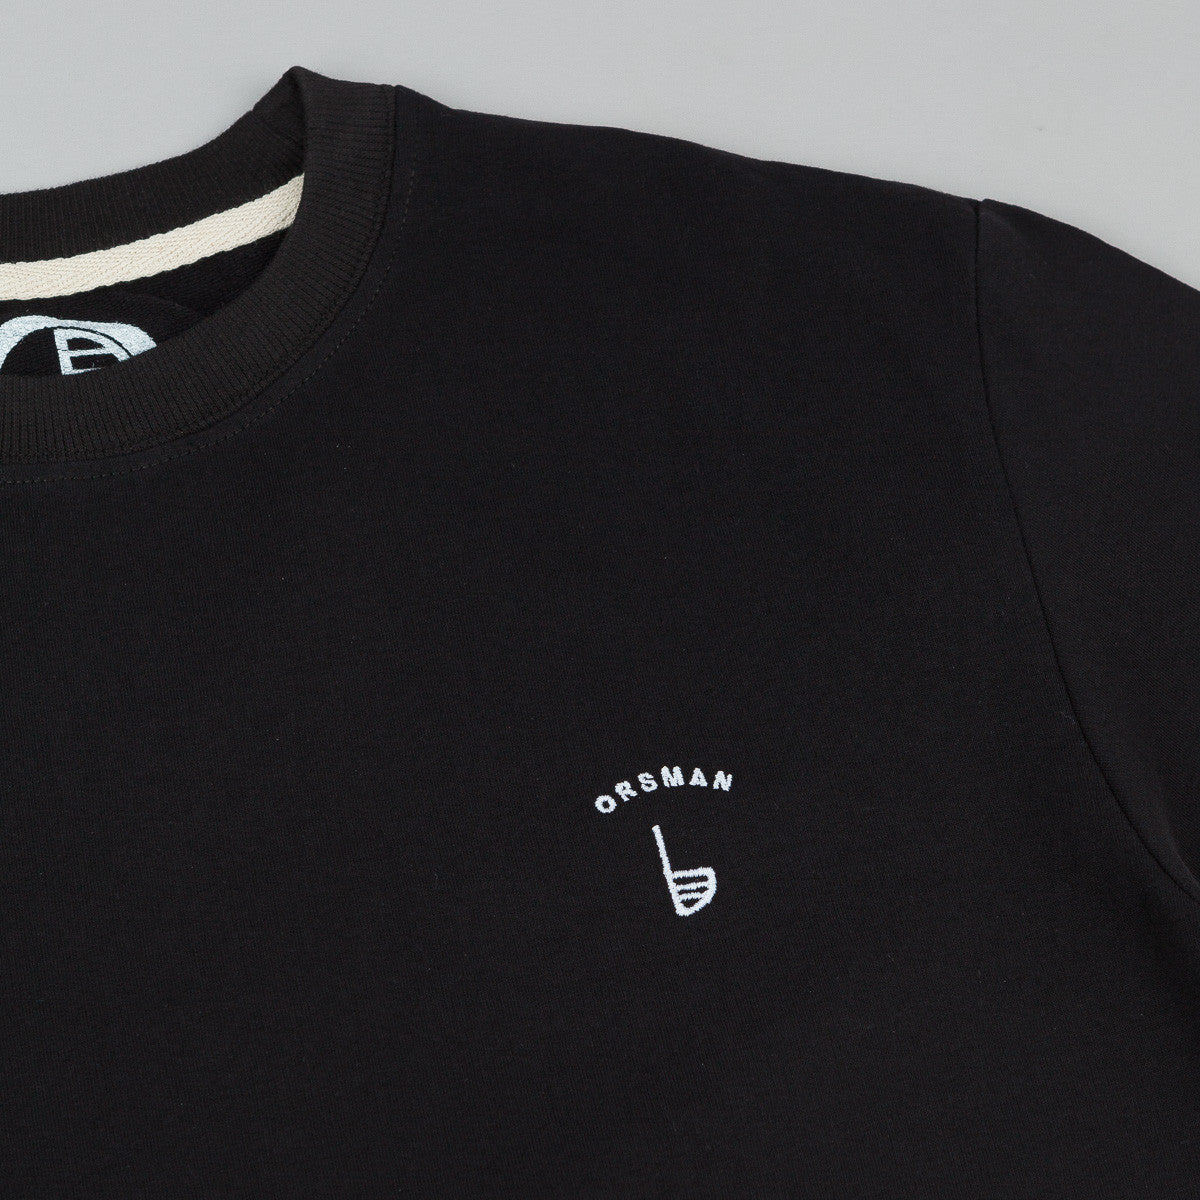 Orsman Explorer T-Shirt - Black